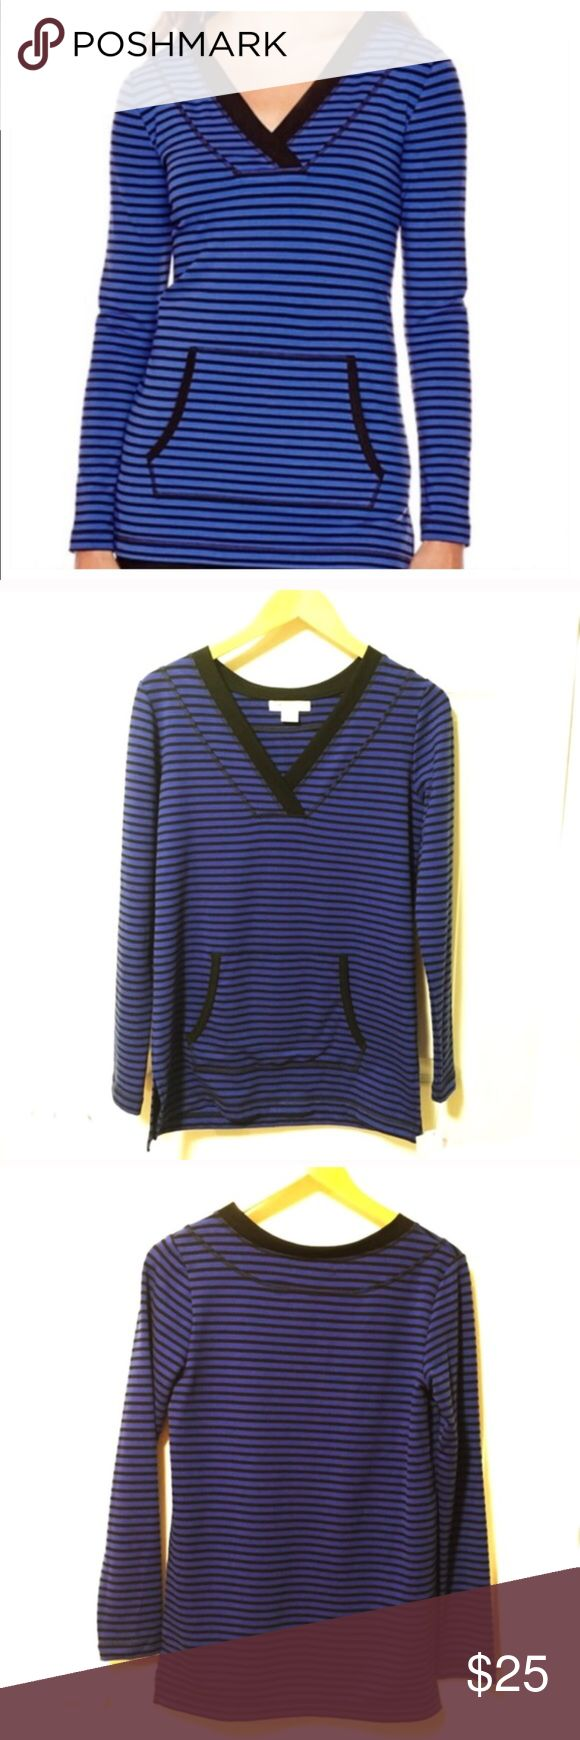 """Blue & Black Striped Tunic with Kangaroo Pocket An overlapping v-neckline and kangaroo pocket mean this striped tunic will give you equal parts function and style. approx. 27"""" - 30"""" length polyester/rayon/spandex. Color is most like first picture. 🙂  🔺Like the item but not the price? Submit an offer using the offer button. Every offer is considered. 🔺Bundle 2 or more items to receive a 20% discount & pay 1 shipping fee. 🔺Questions? Please ask. I want your Poshmark experience to be…"""